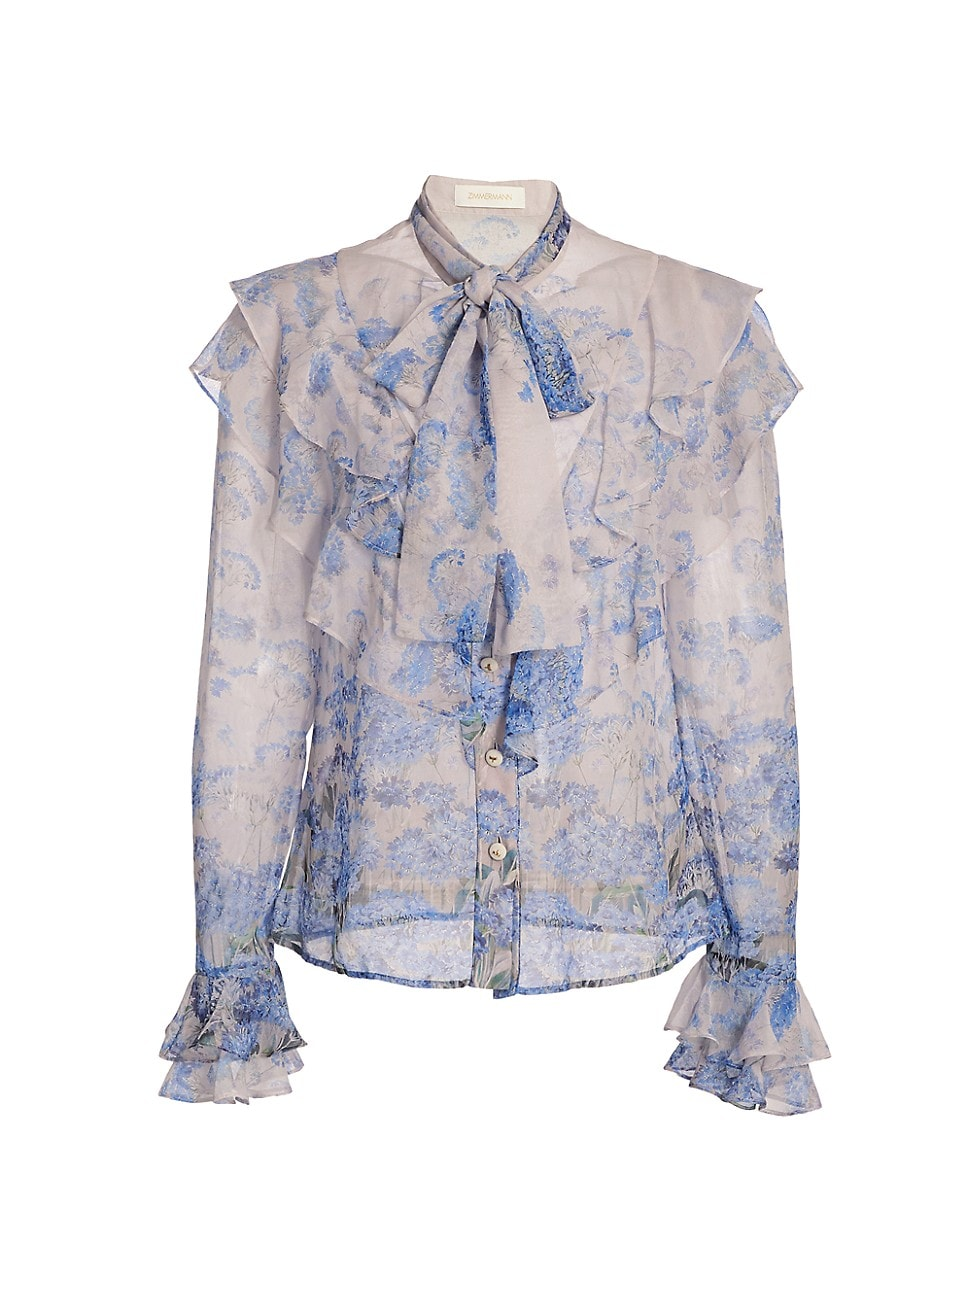 Zimmermann WOMEN'S WILD BOTANICA LUMINOUS RUFFLE BLOUSE